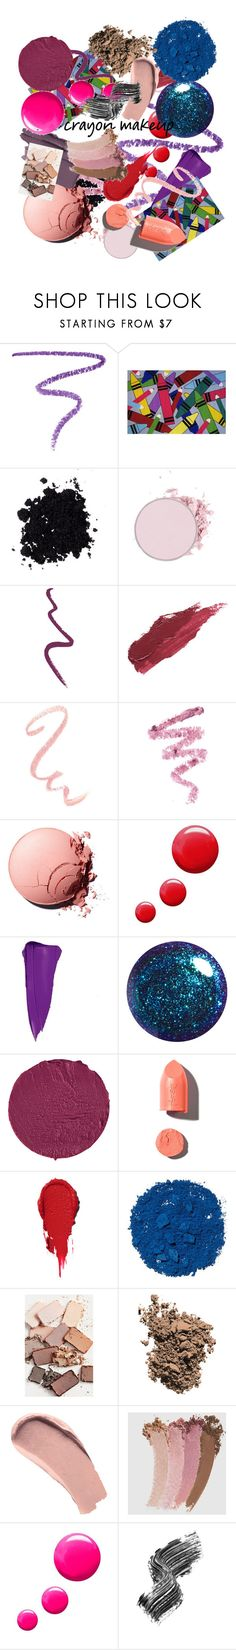 """""""All the colors: Crayon-Inspired makeup"""" by genesisdesign ❤ liked on Polyvore featuring beauty, Marc Jacobs, Fun Rugs, Topshop, Lily Lolo, Cynthia Rowley, Charlotte Russe, Givenchy, PUR and Illamasqua"""